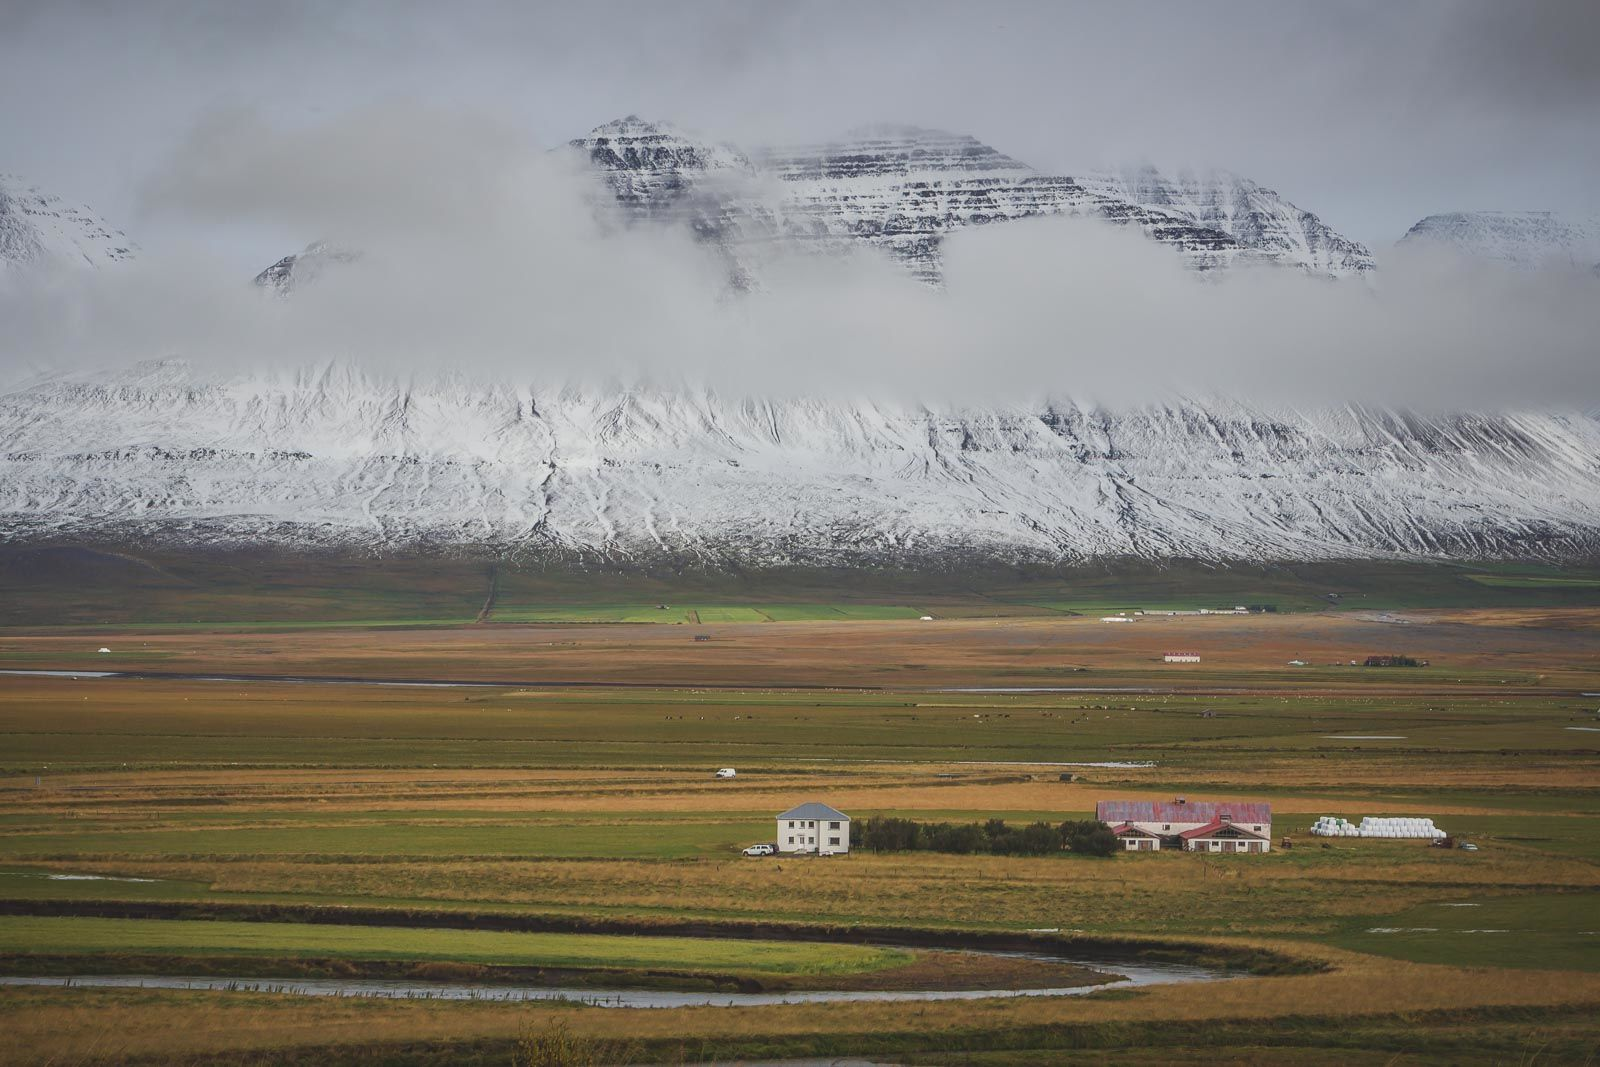 Iceland is scarce on trees